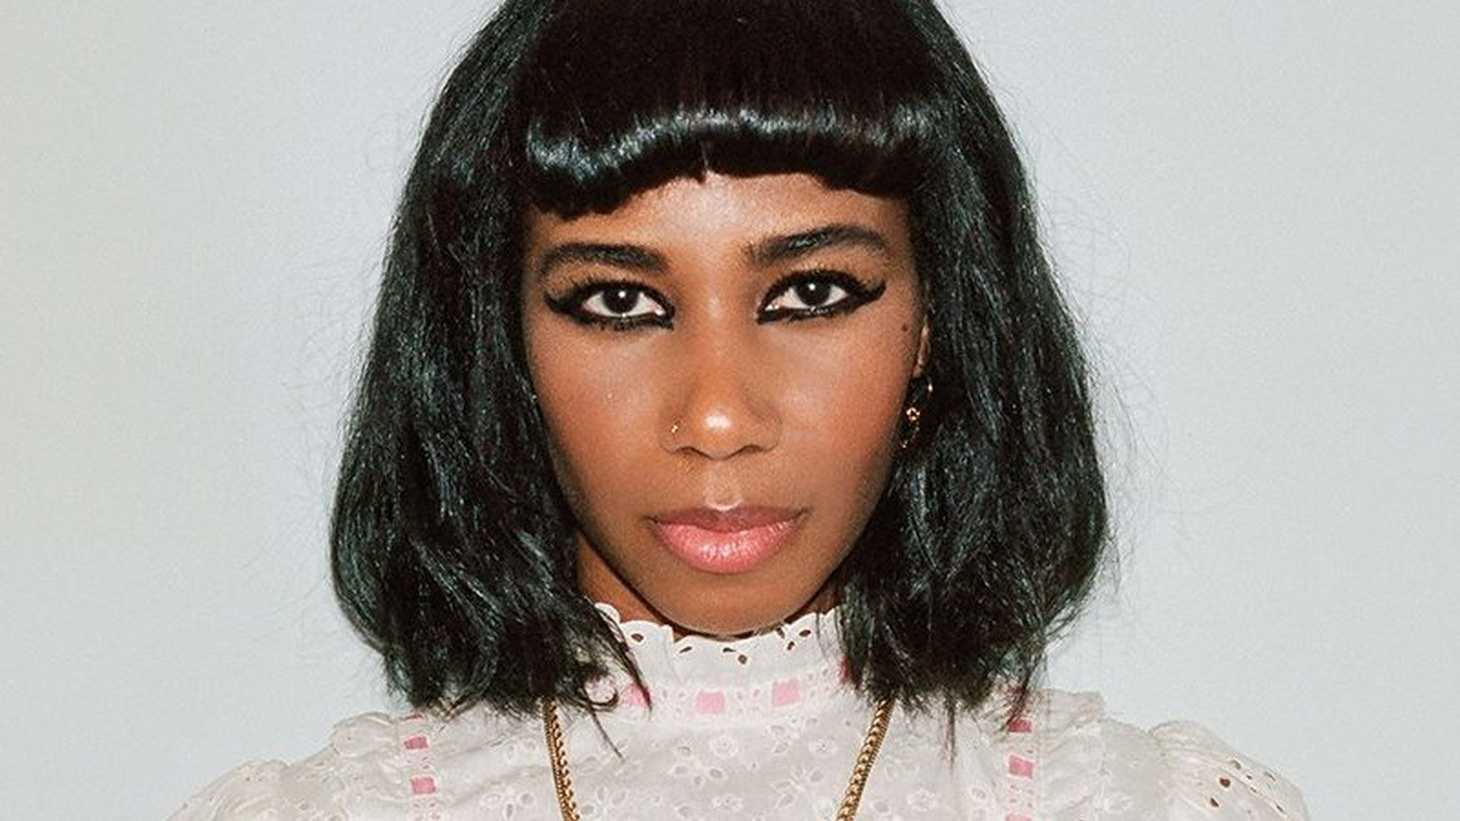 """Santigold's latest comes in the form of a summer-inspired, sponteaneous mixtape-style project. In collaboration with Dre Skull, they tapped into their shared passion for reggae and Afro-Caribbean music. Check out """"Run the Road."""""""